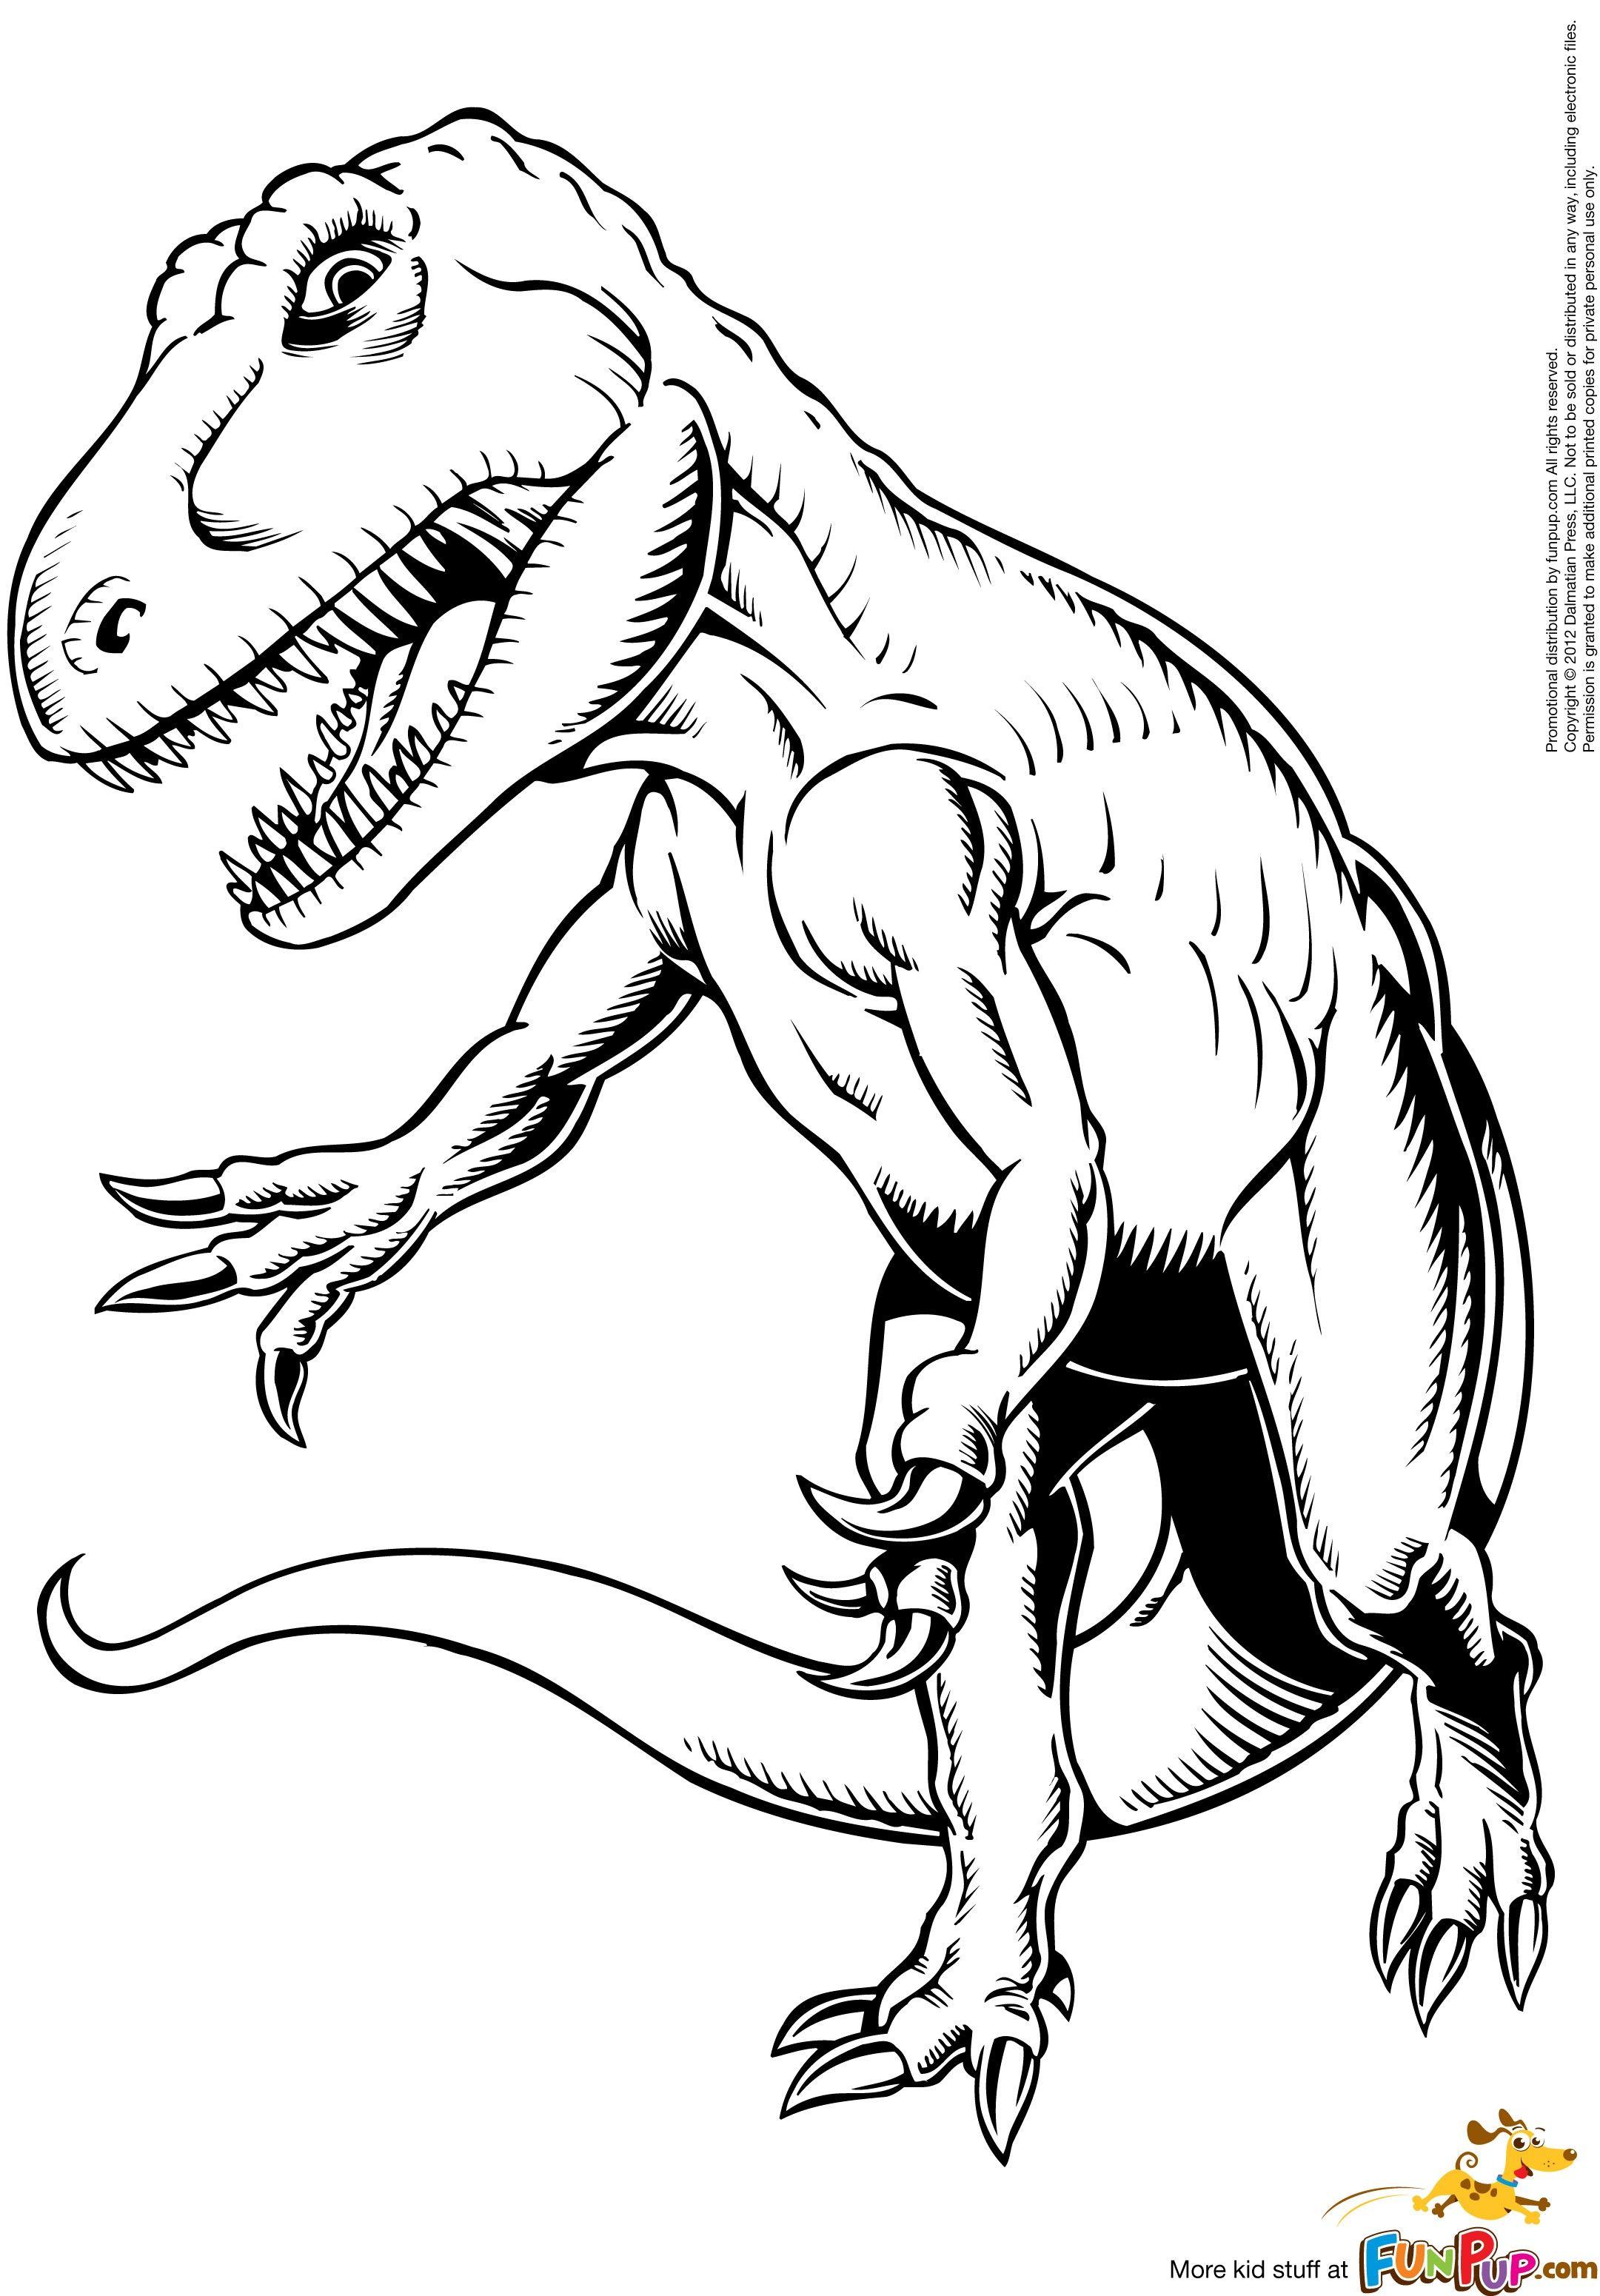 1000 images about printables dinosaurs and dragons on pinterest